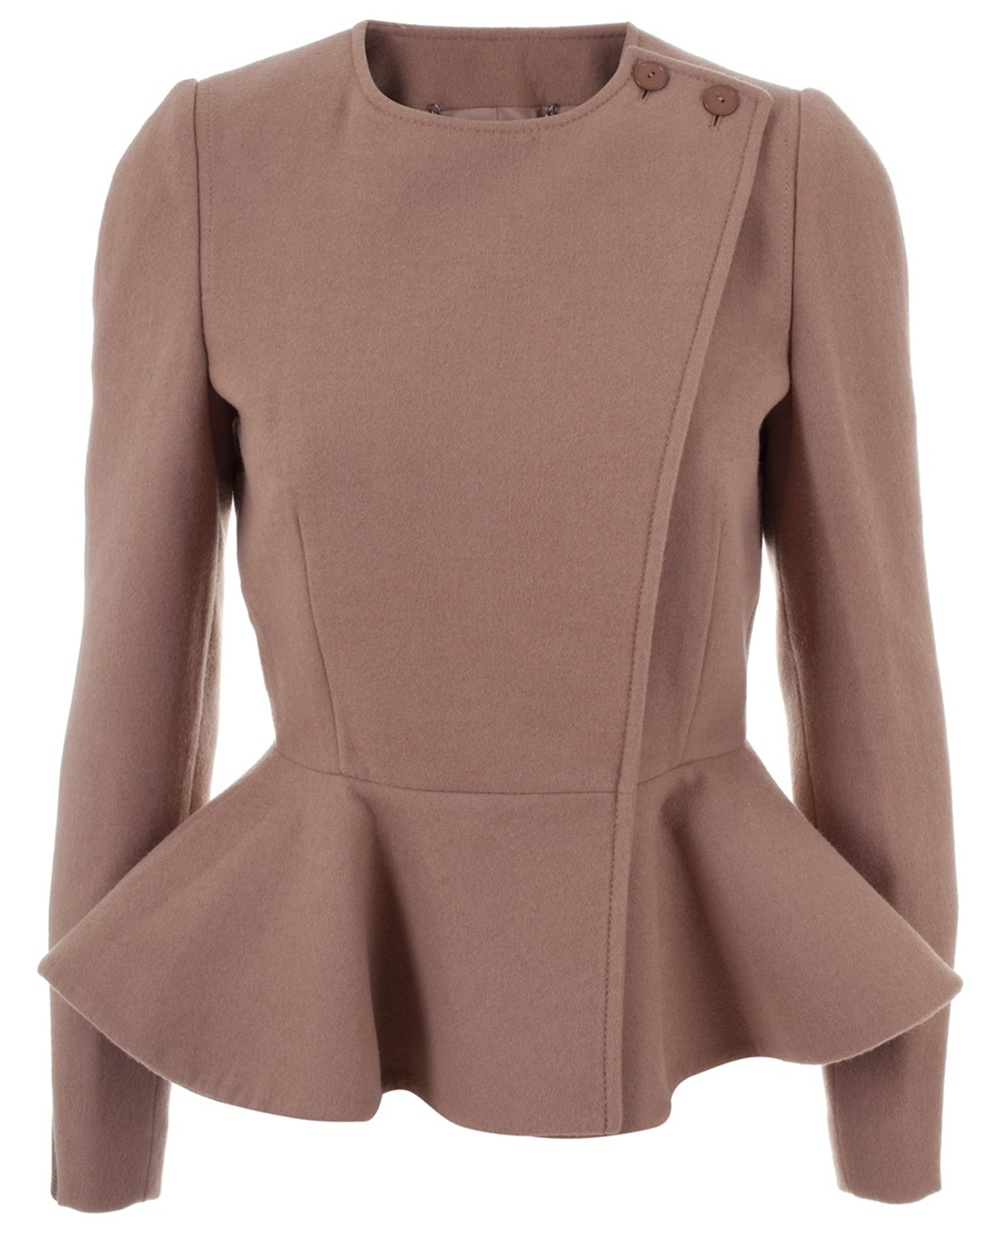 Quirk Trend : Peplum Tops/ Jackets | Fashion Quirk